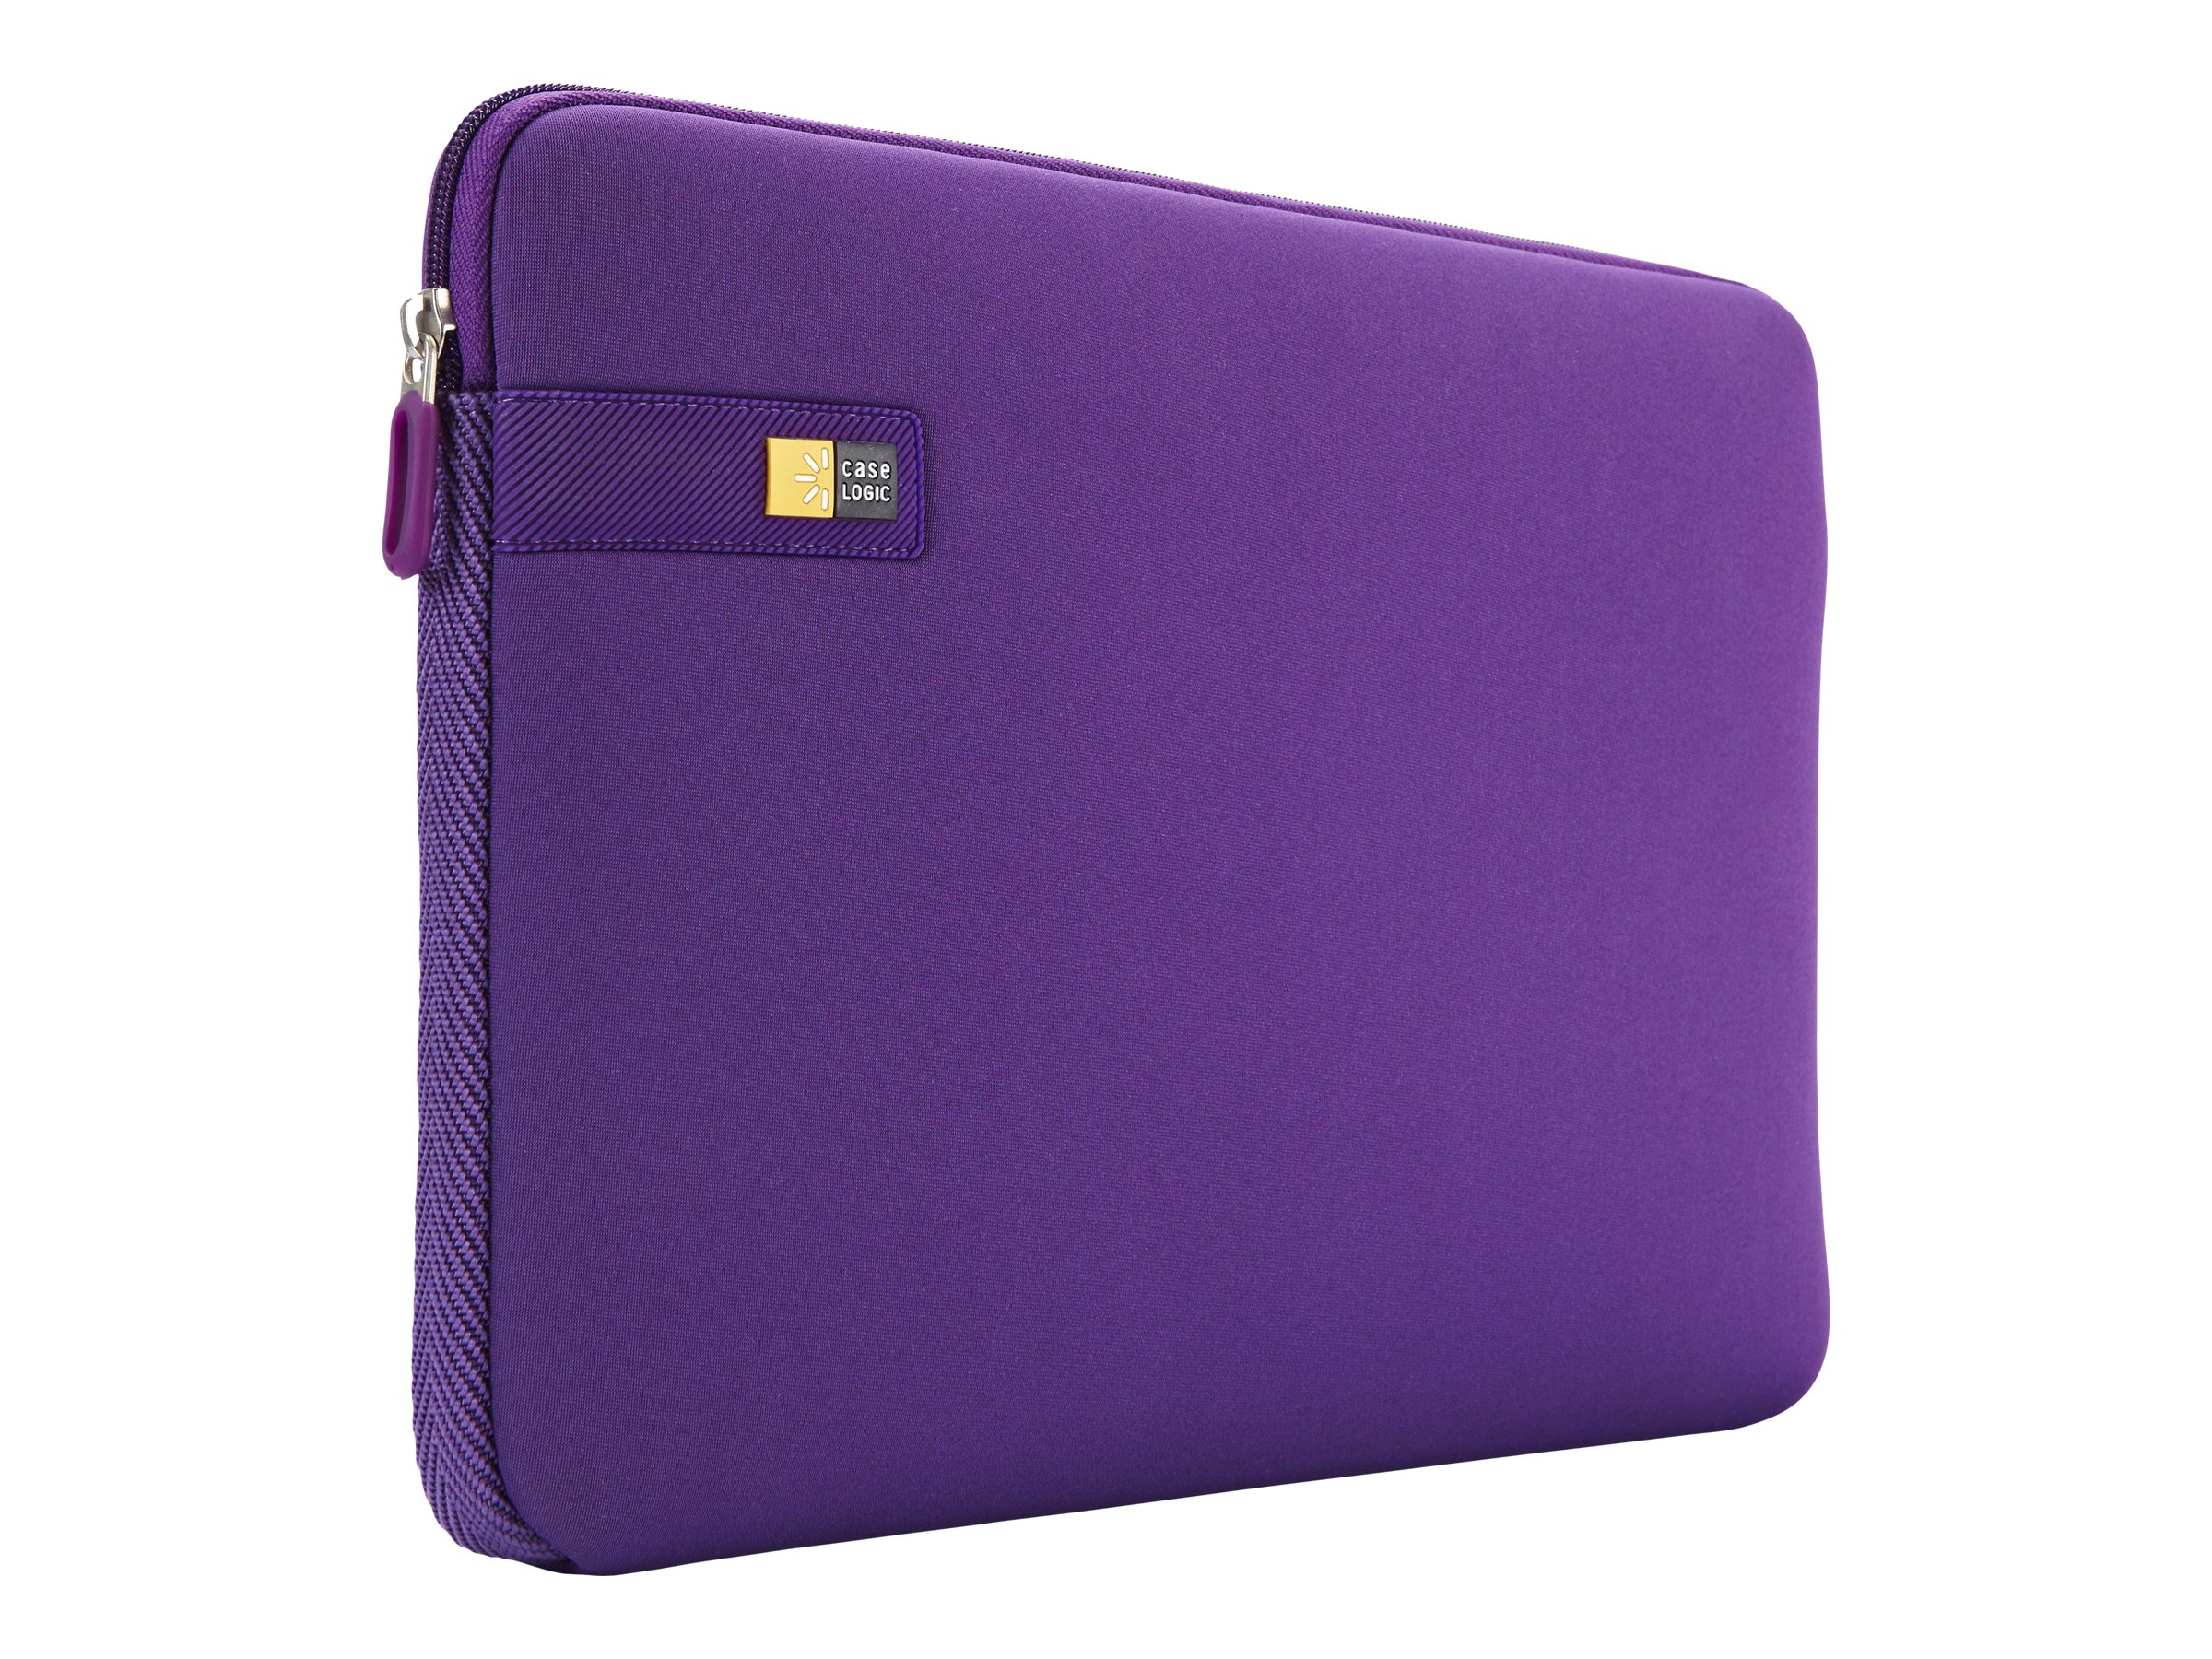 Case Logic 15.6 Laptop iPad Sleeve, Purple, LAPS-116PURPLE, 15269387, Carrying Cases - Notebook